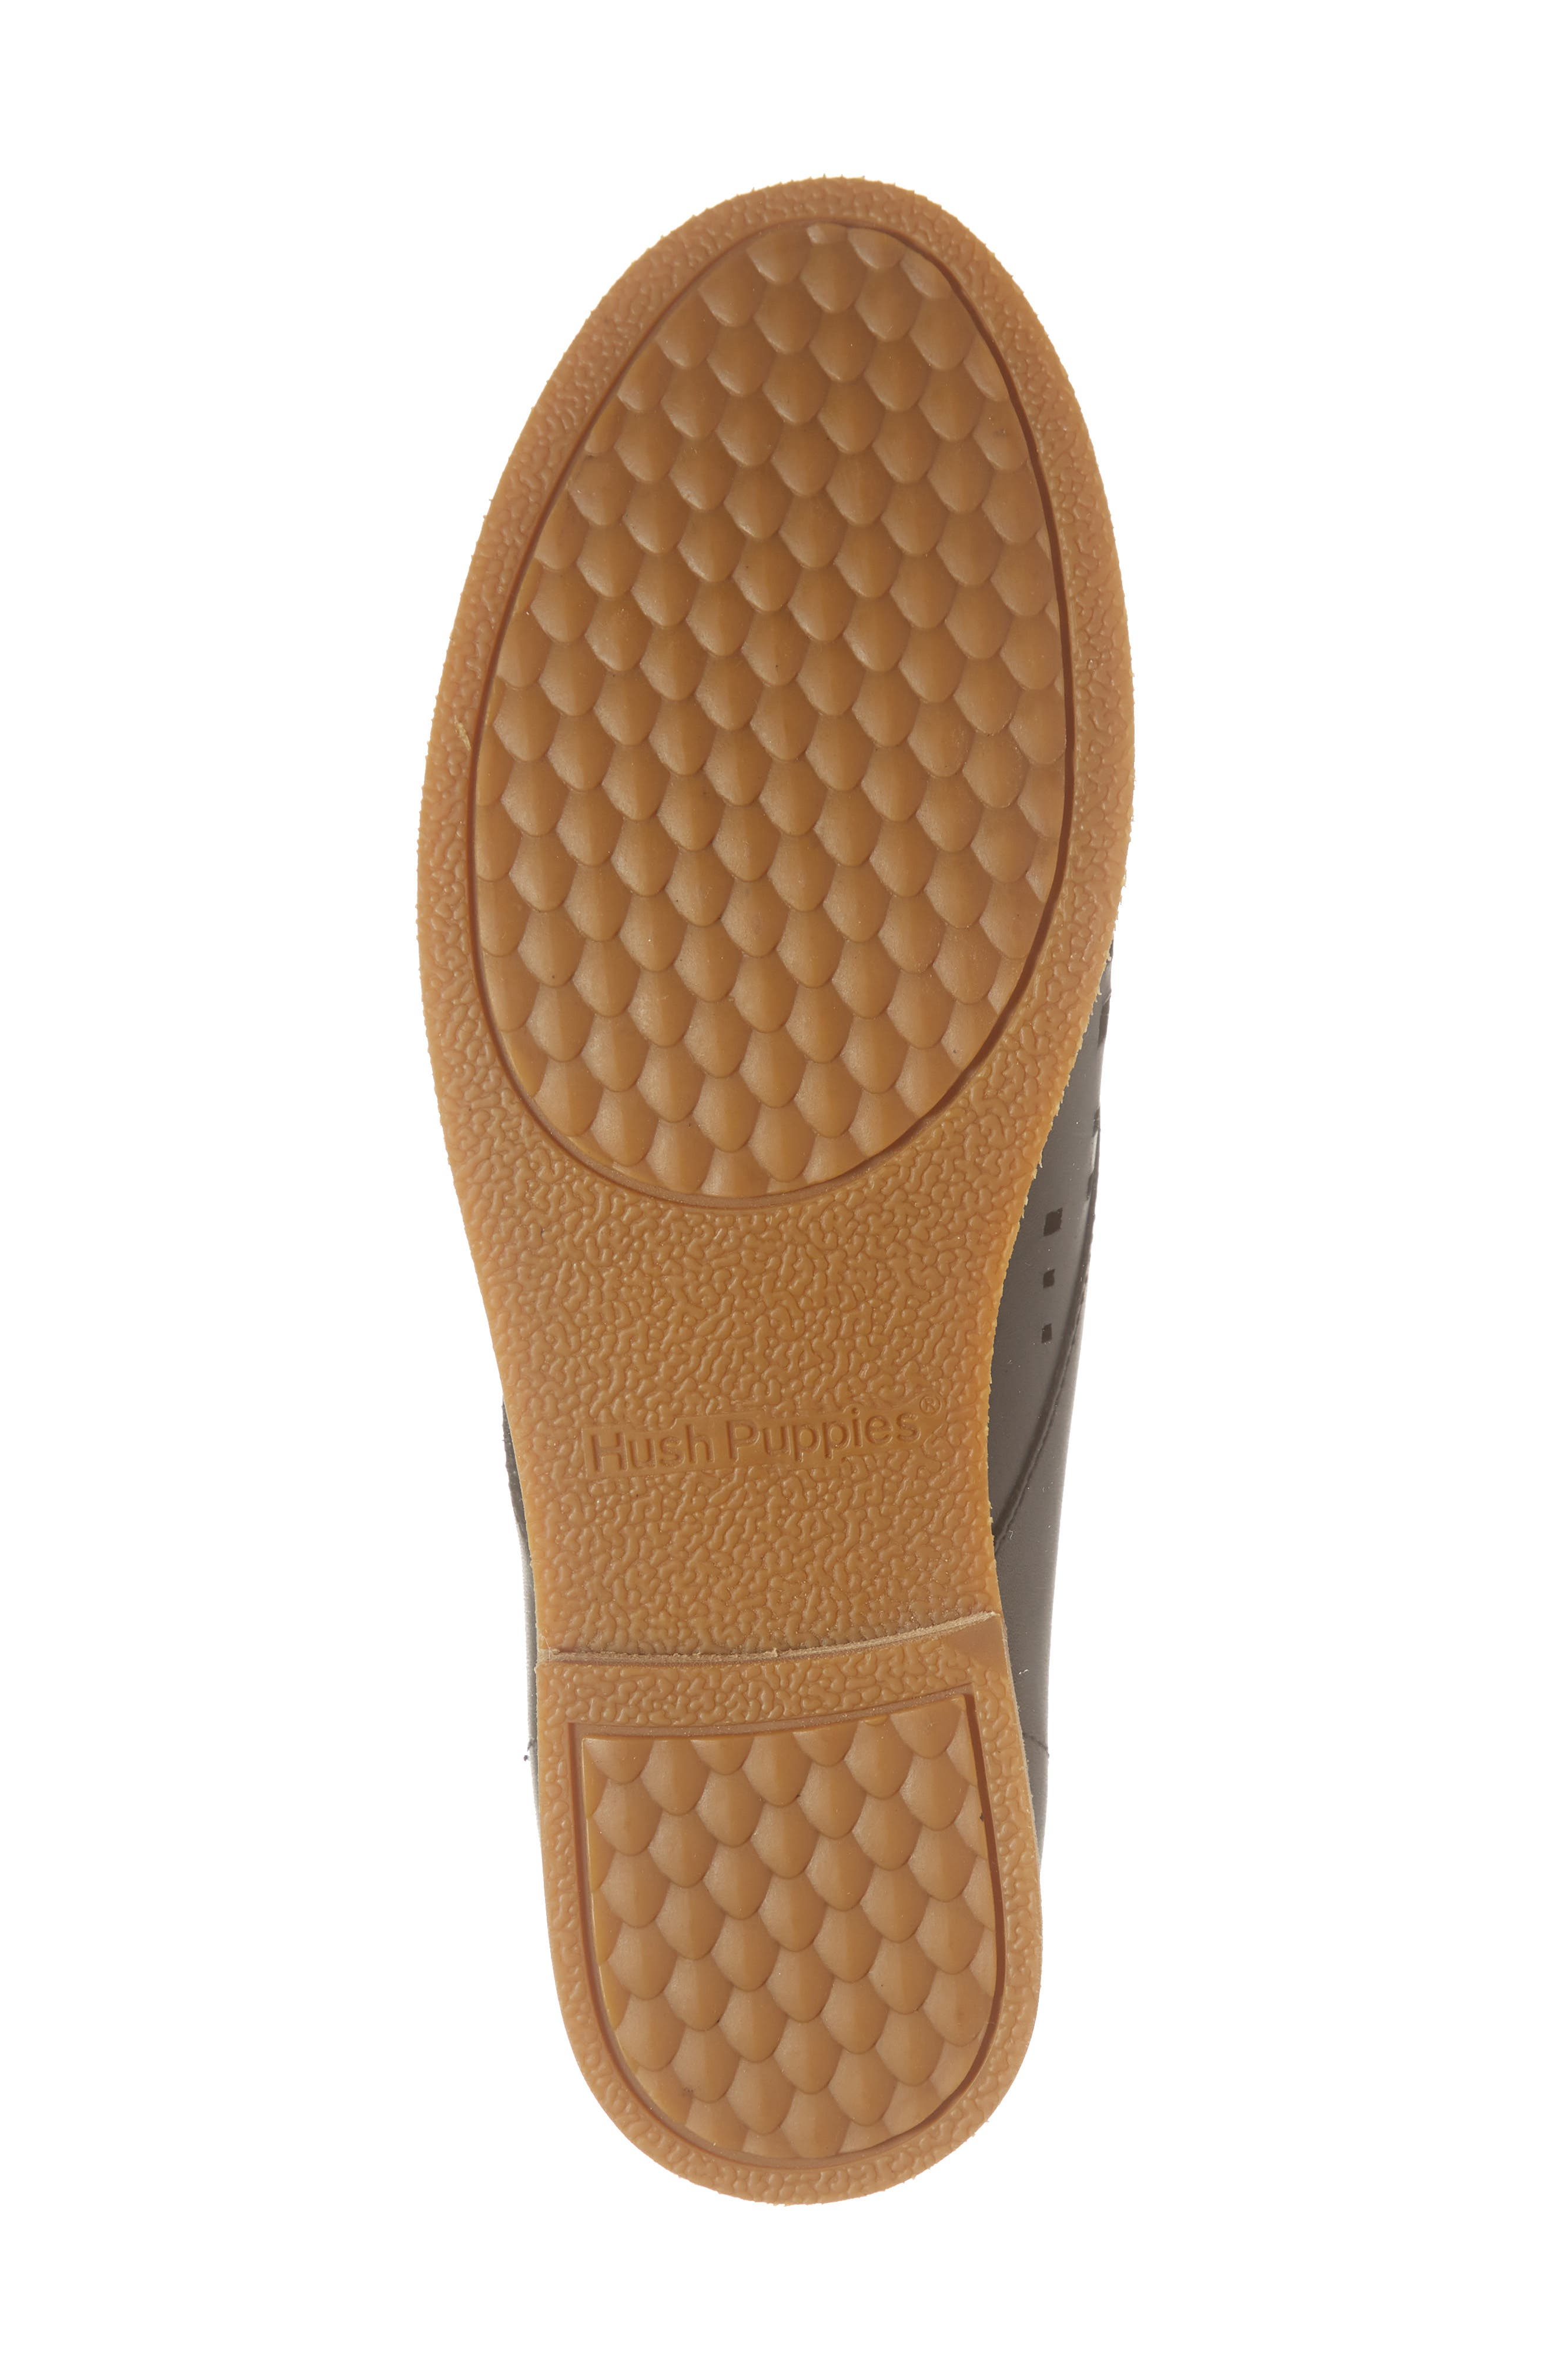 HUSH PUPPIES<SUP>®</SUP>, Chardon Perforated Derby, Alternate thumbnail 6, color, BLACK LEATHER